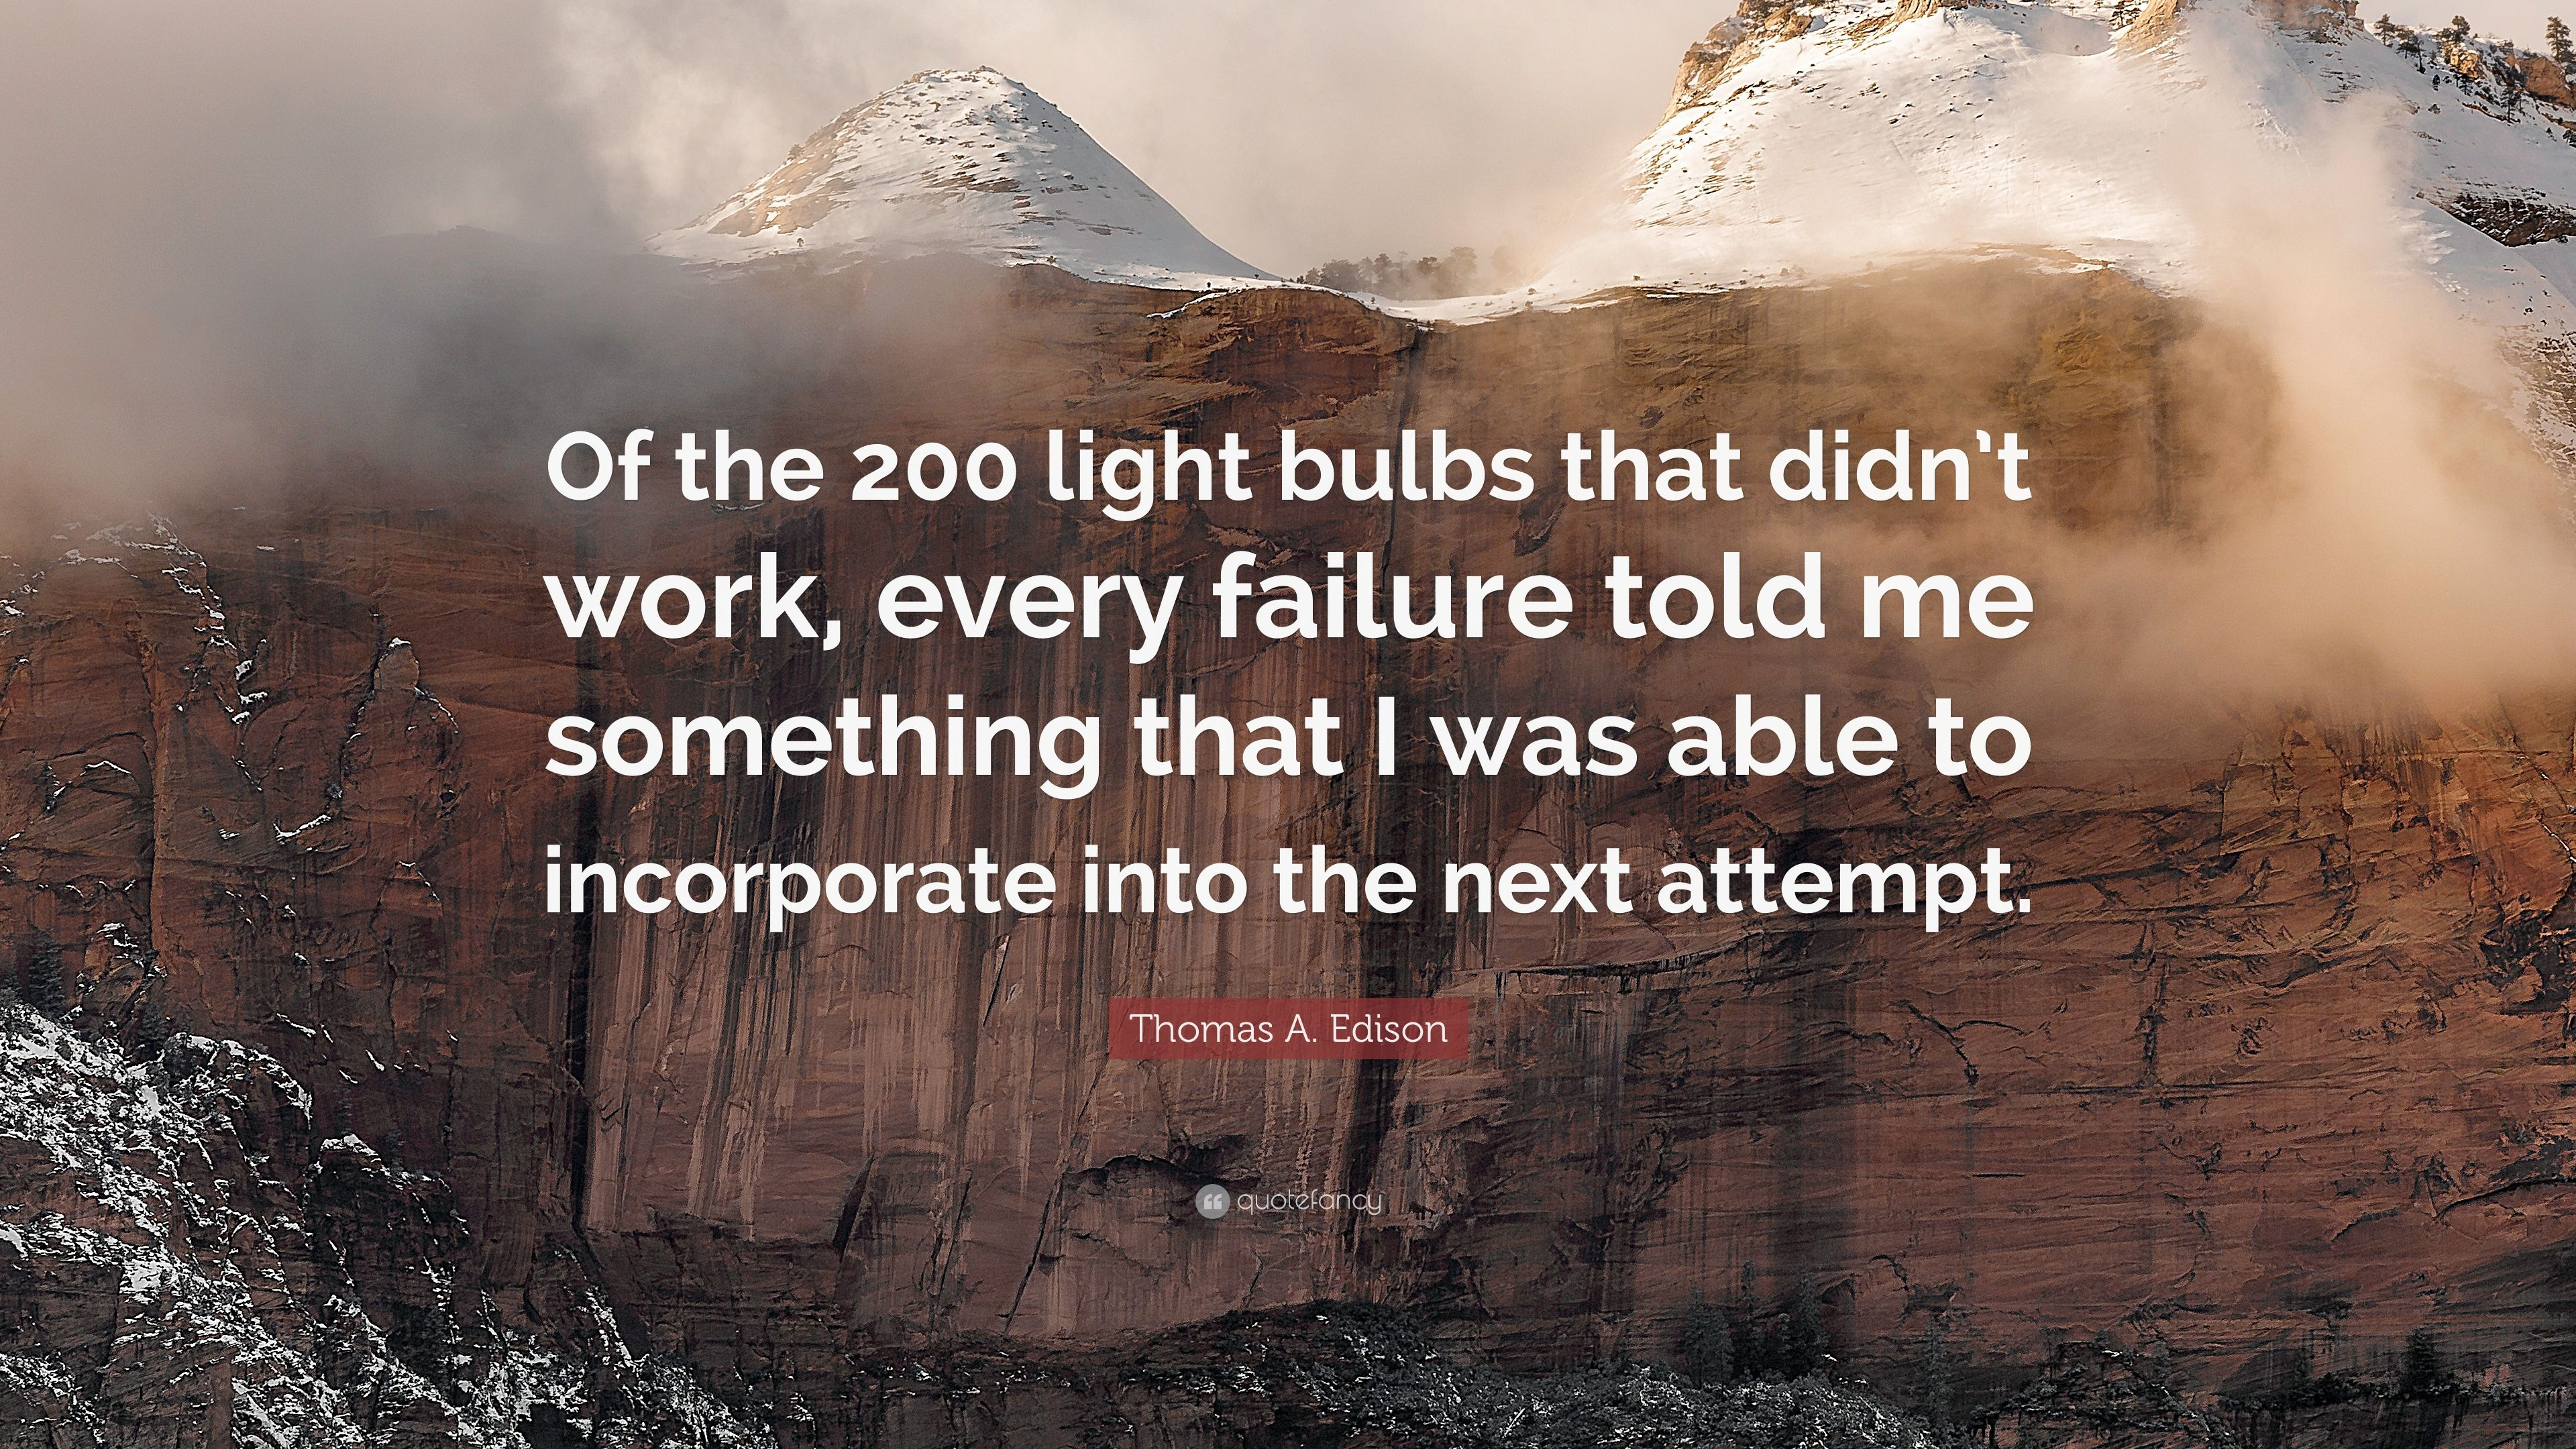 """Quotes About Light Bulbs: Thomas A. Edison Quote: """"Of The 200 Light Bulbs That Didn"""